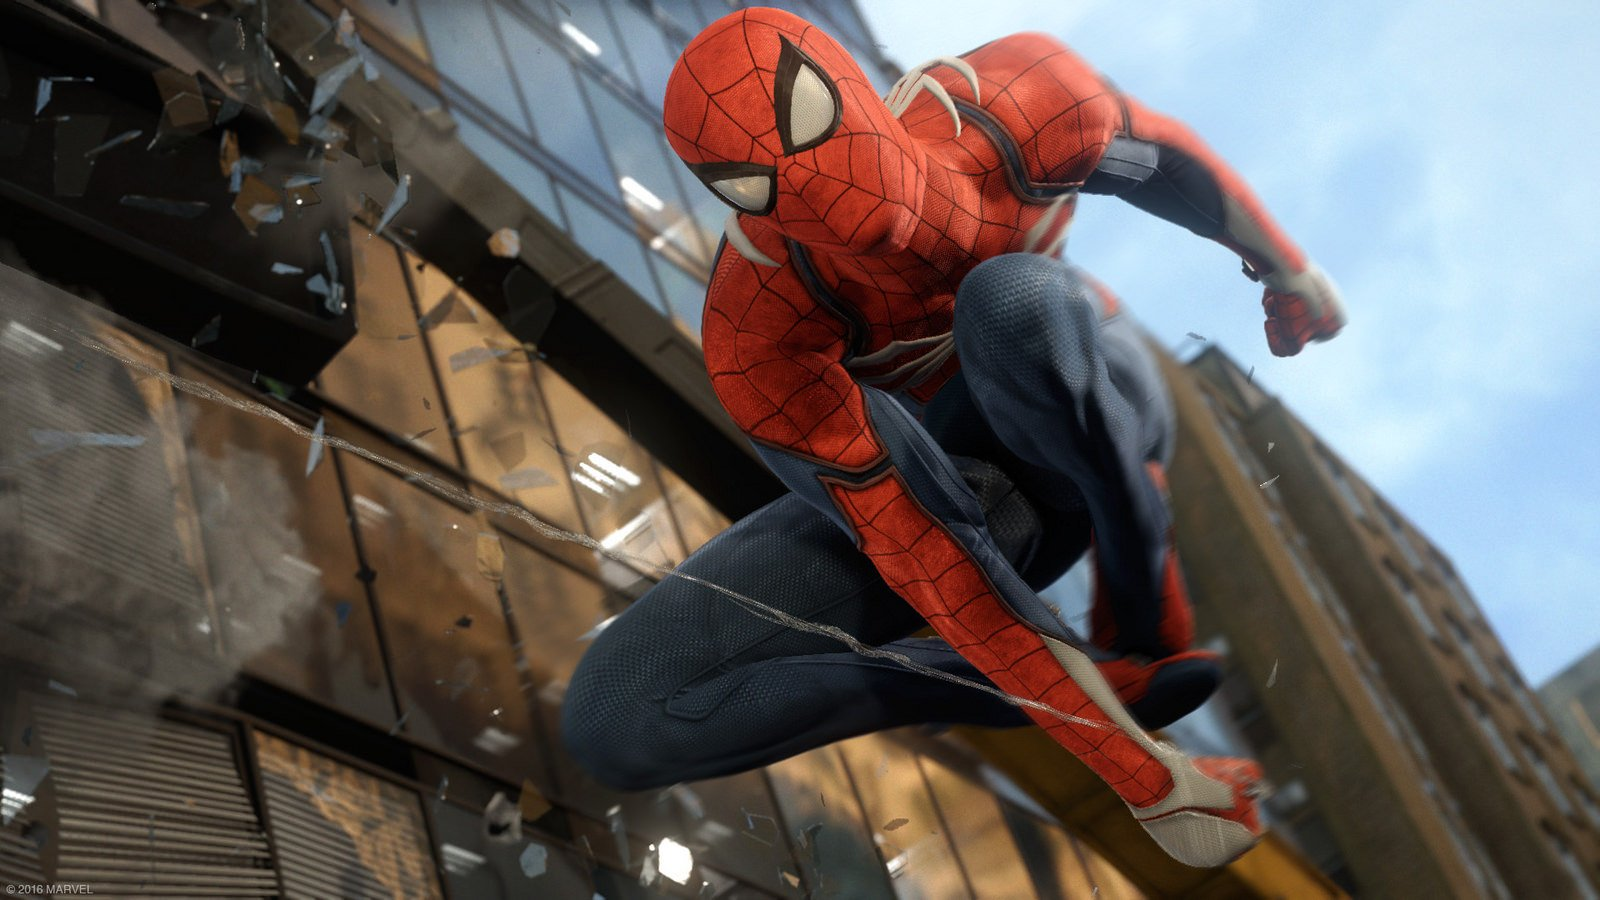 ps4 holiday gift guide 2018 marvel's spider-man